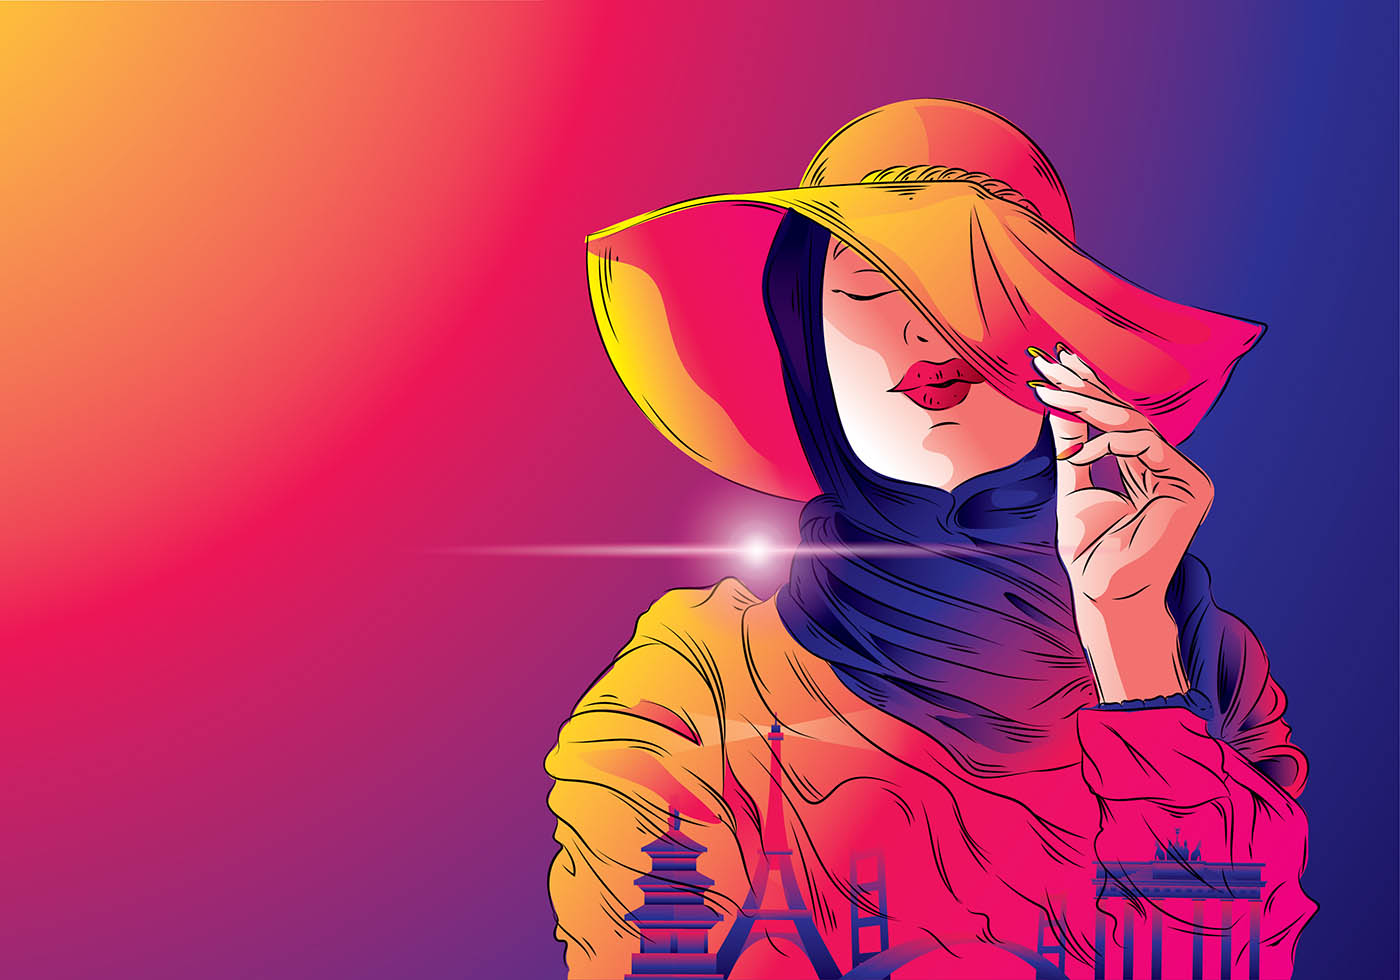 Cartoon Images Fall Wallpaper The Problem With Hijab Fashion Ilmfeed